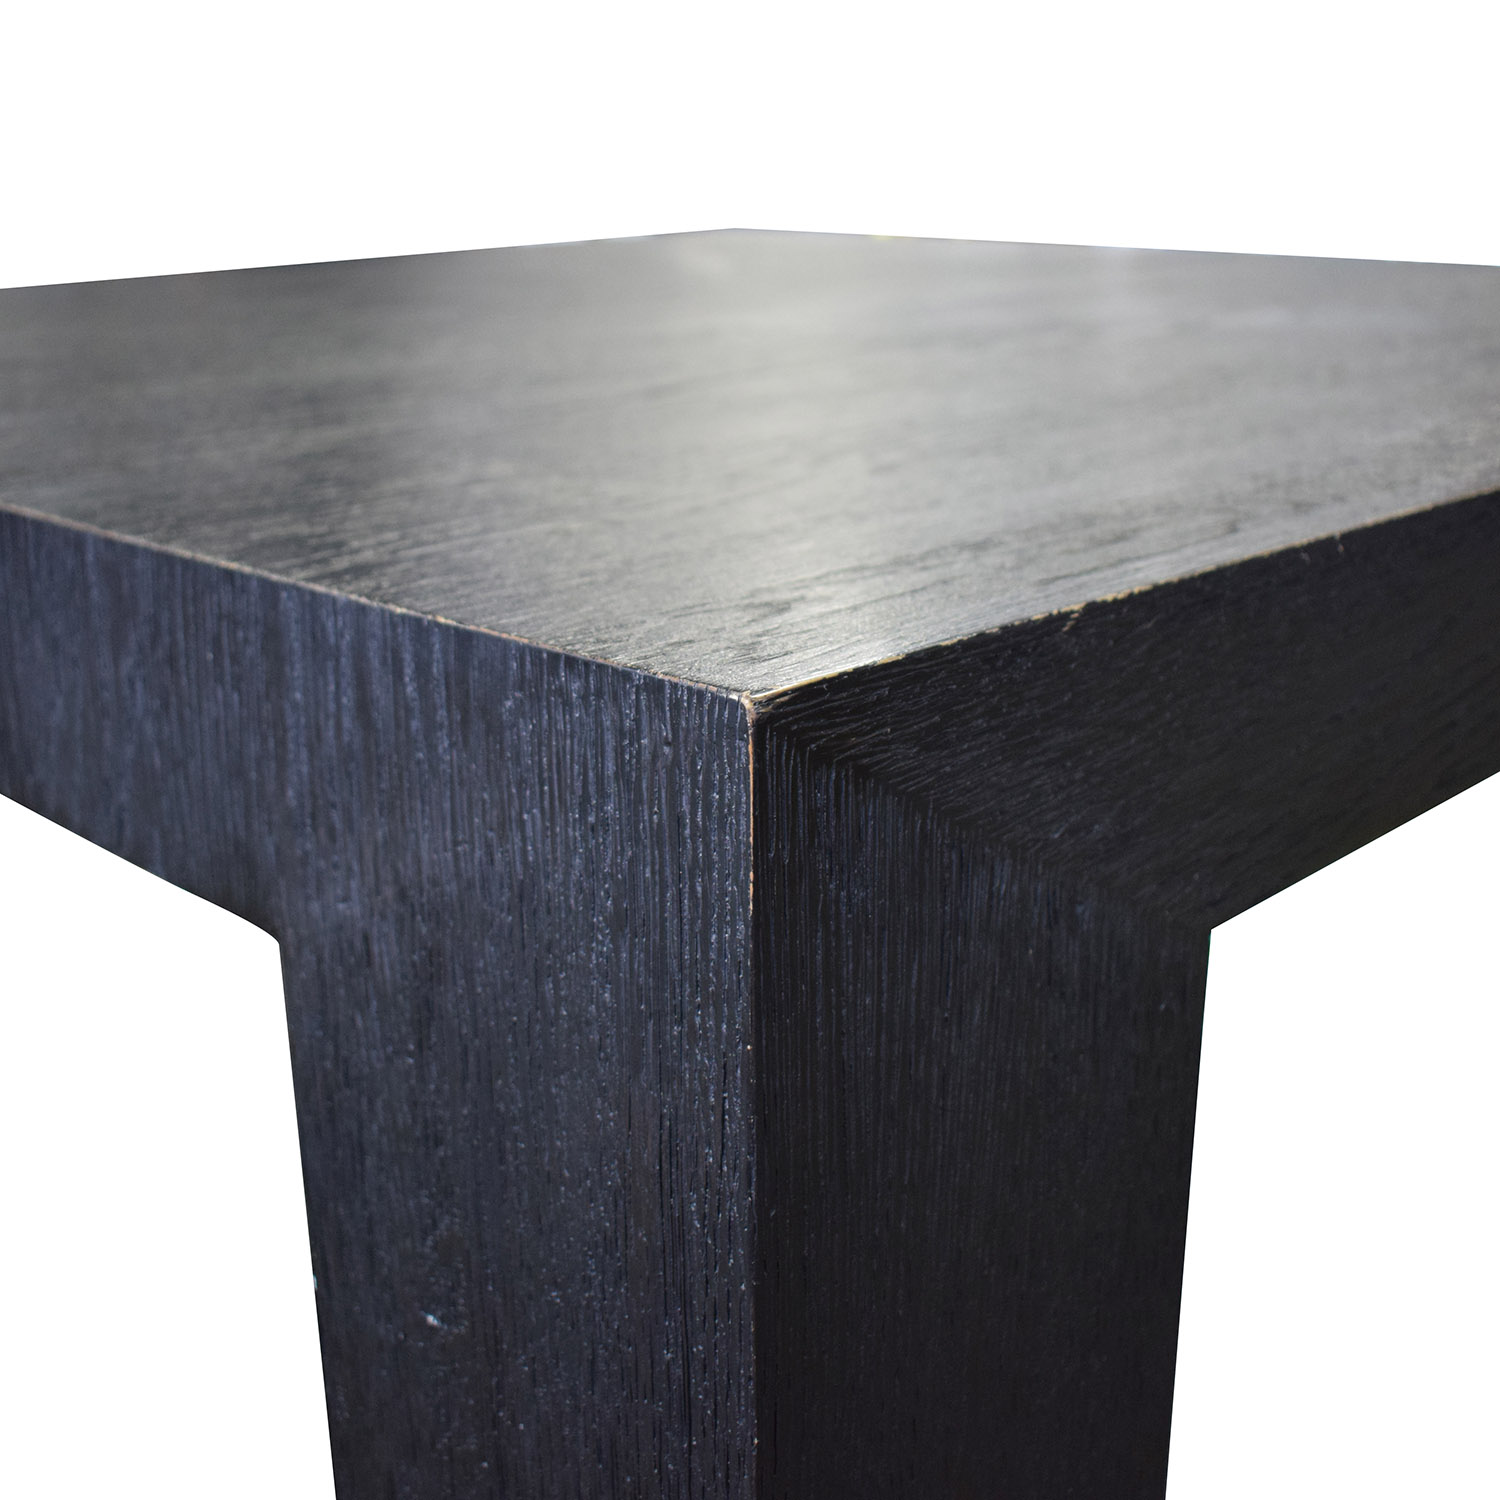 Restoration Hardware Machinto Square Dining Table / Dinner Tables